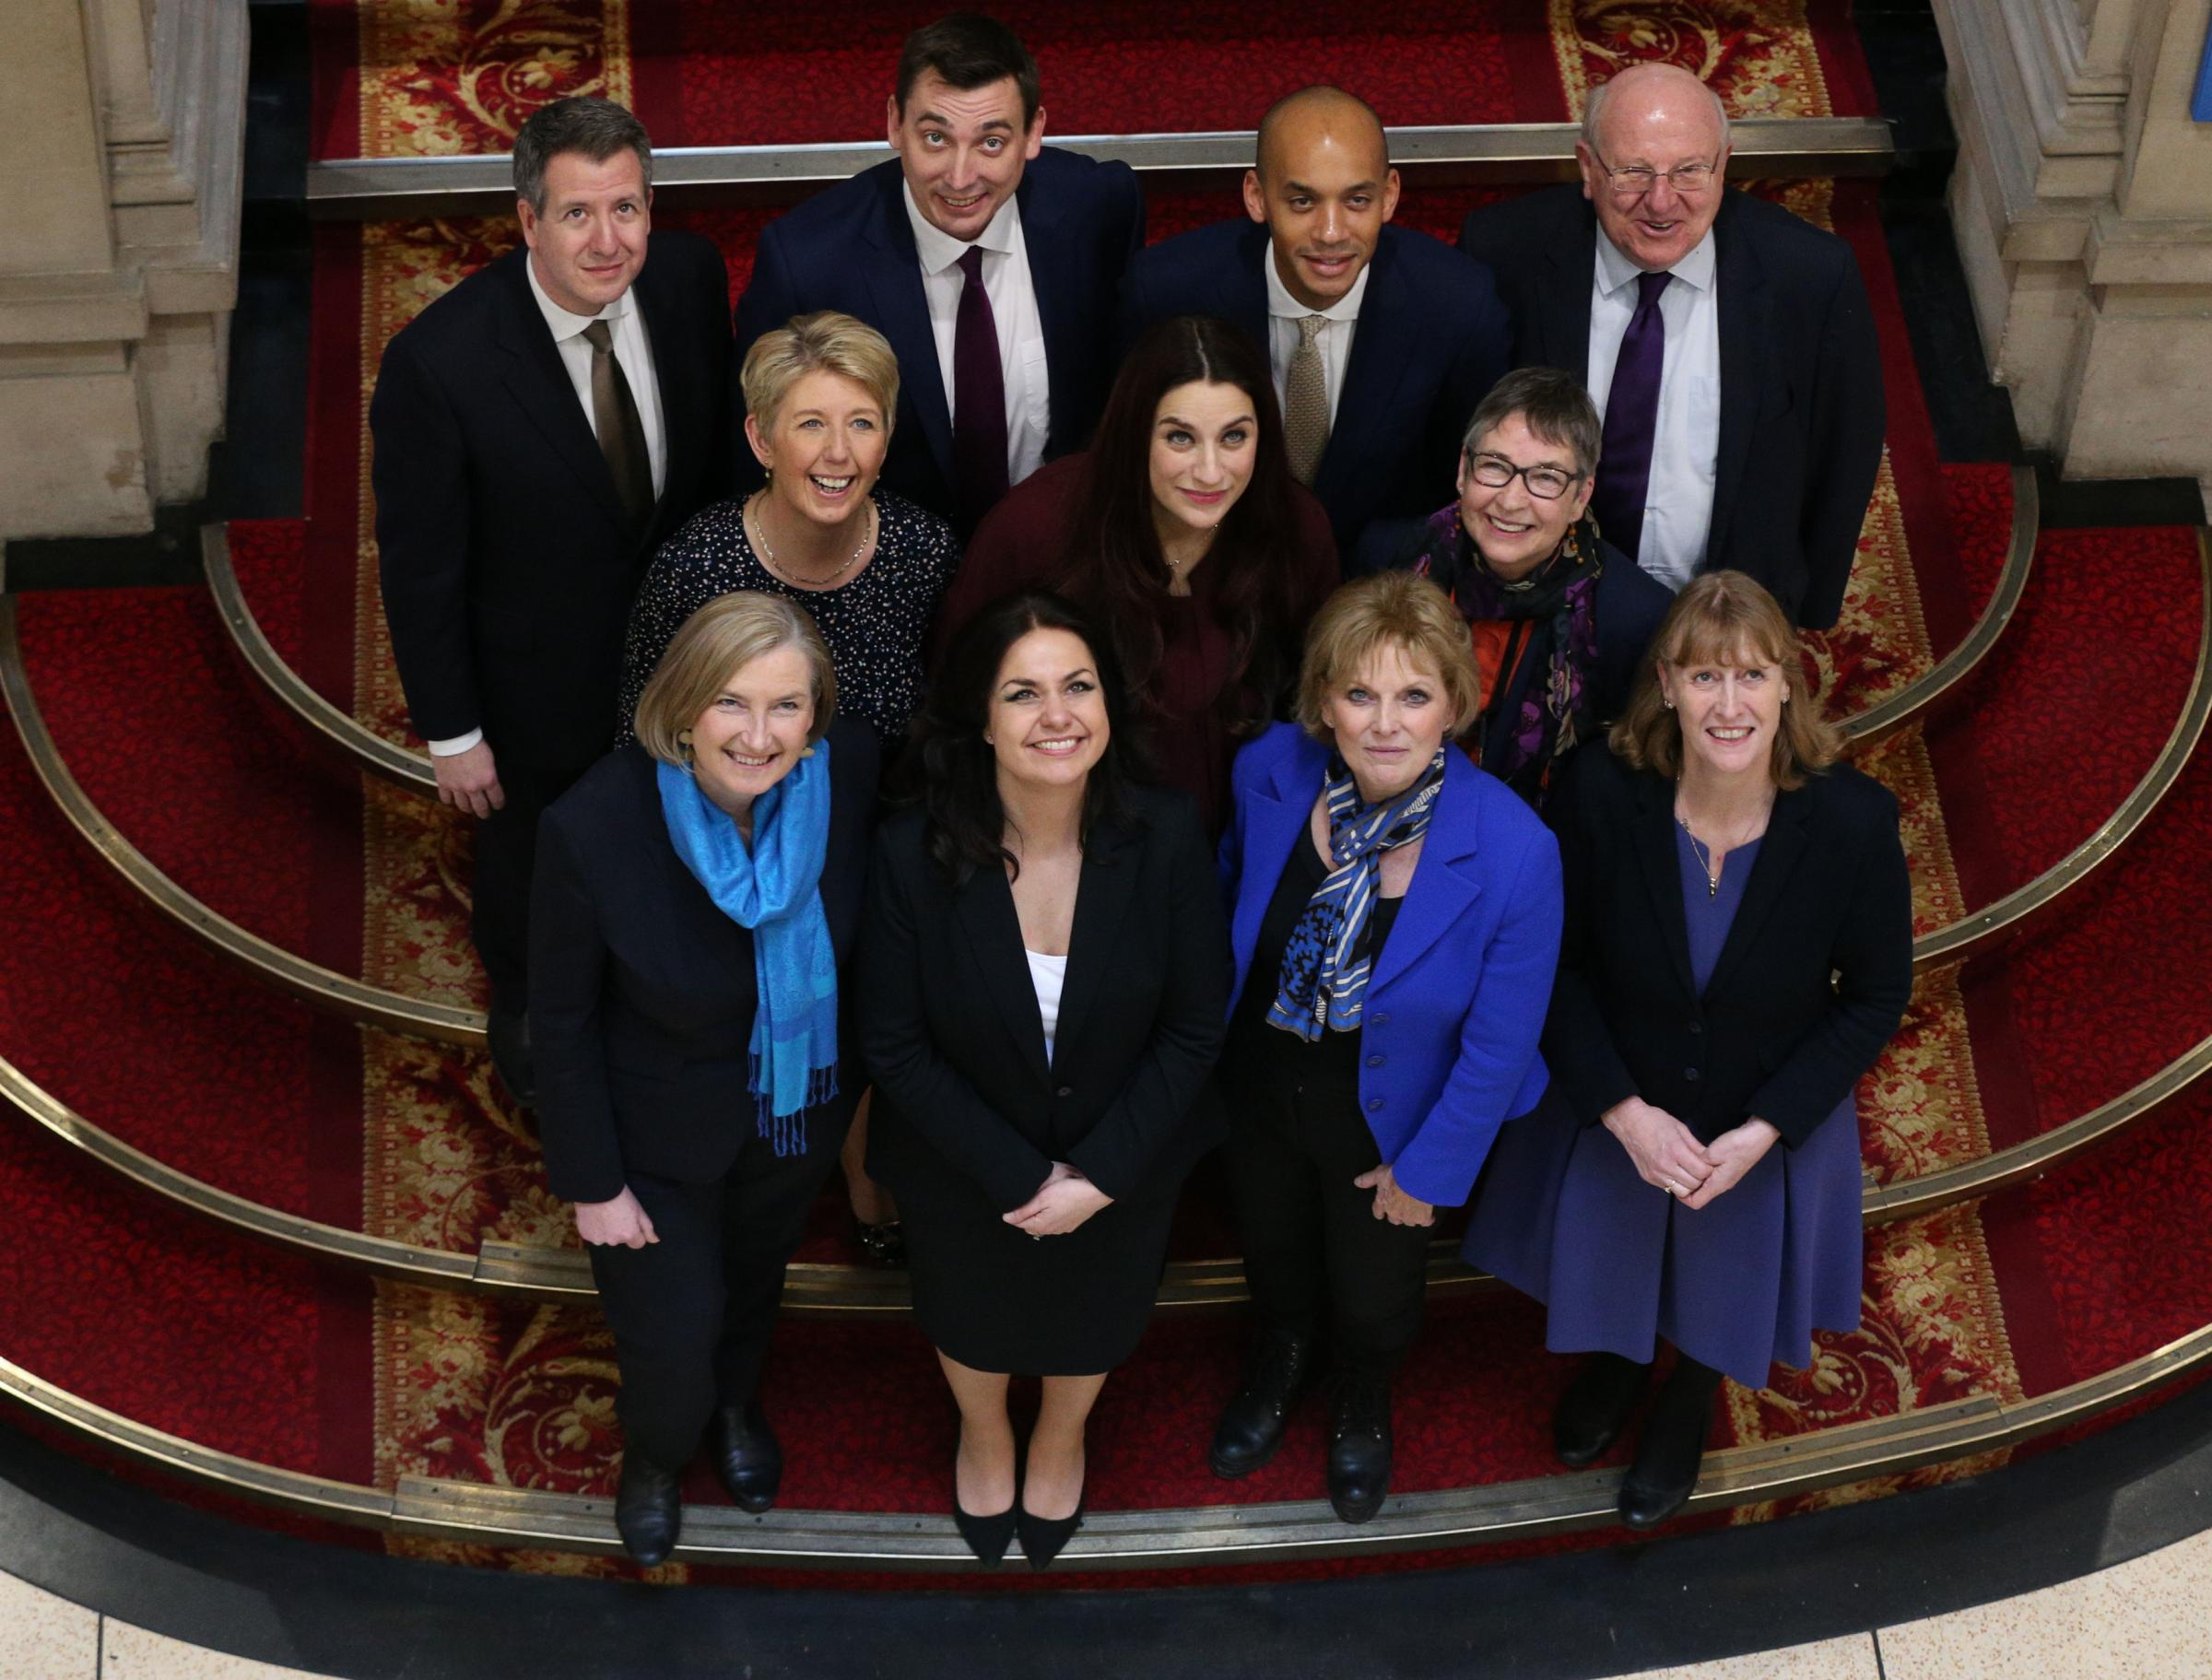 Chris Leslie, Gavin Shuker, Chuka Umunna and Mike Gapes, Angela Smith, Luciana Berger and Ann Coffey, Sarah Woollaston, Heidi Allen, Anna Soubry and Joan Ryan, following a press conference for the Independent Group (Picture: Jonathan Brady/PA Wire)